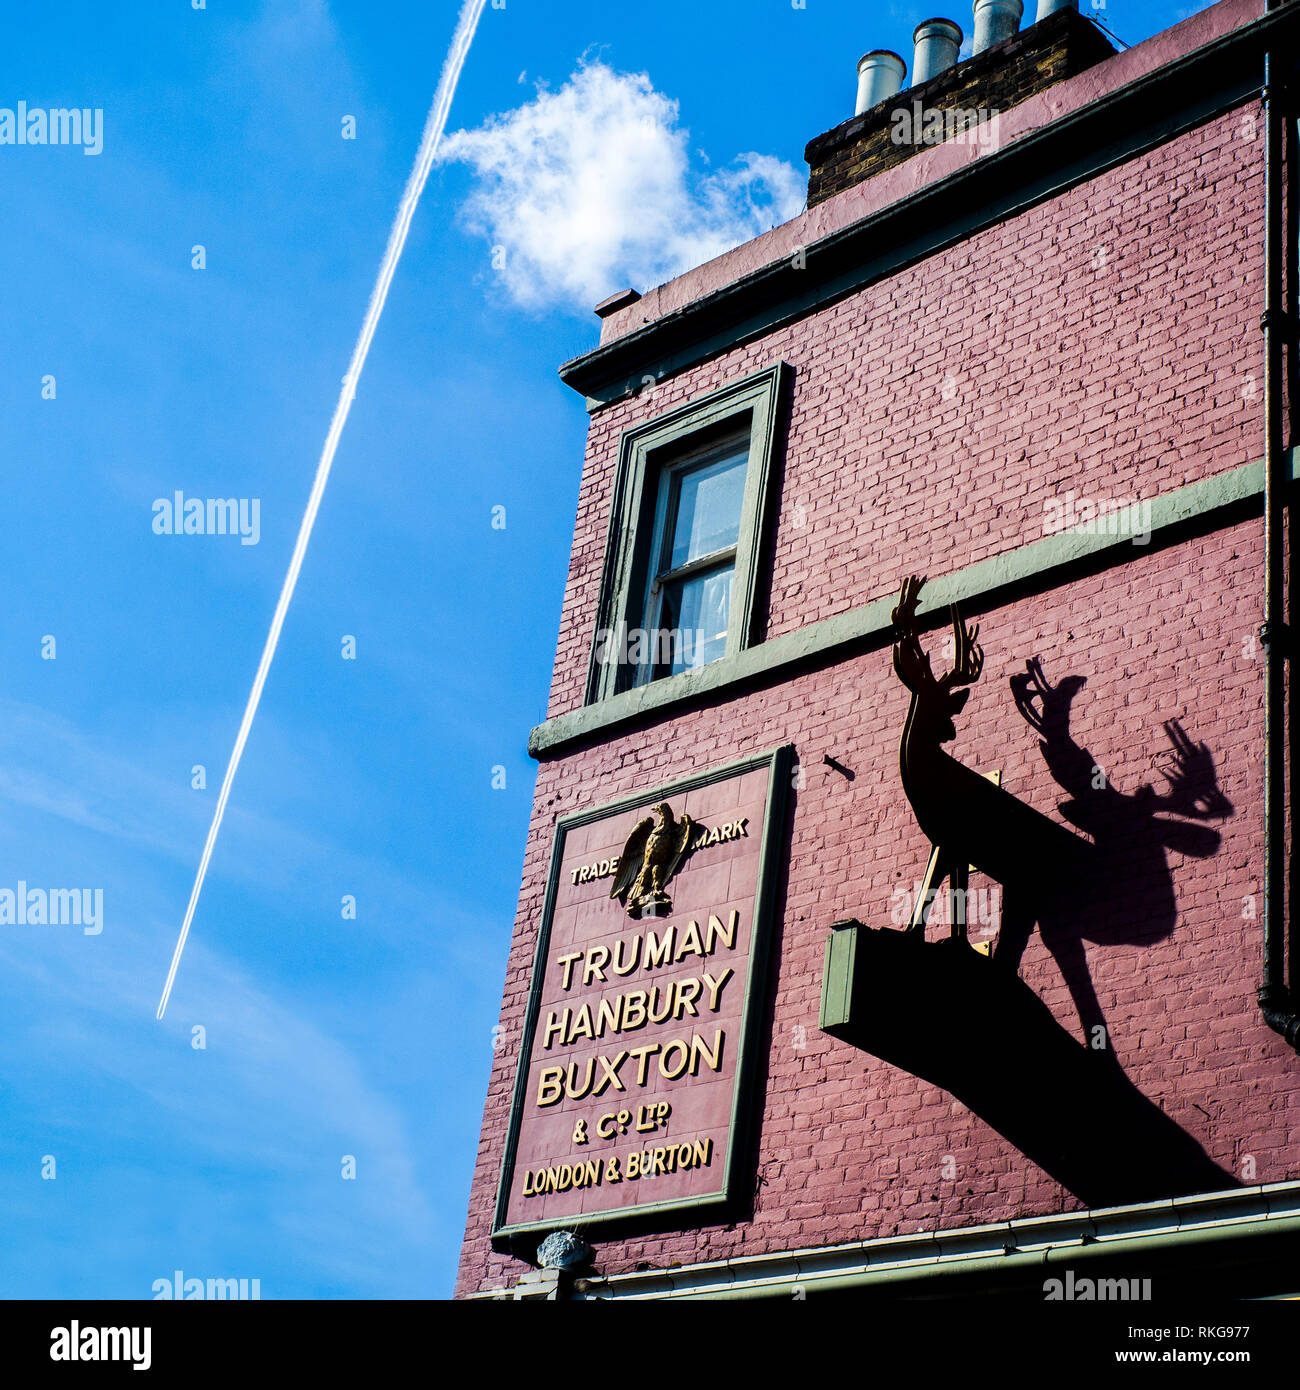 view of plane and vapour plume with pub in foreground, the bucks head pub external signage ,Camden, Truman Hanbury Buxton and Co ltd London Burton - Stock Image